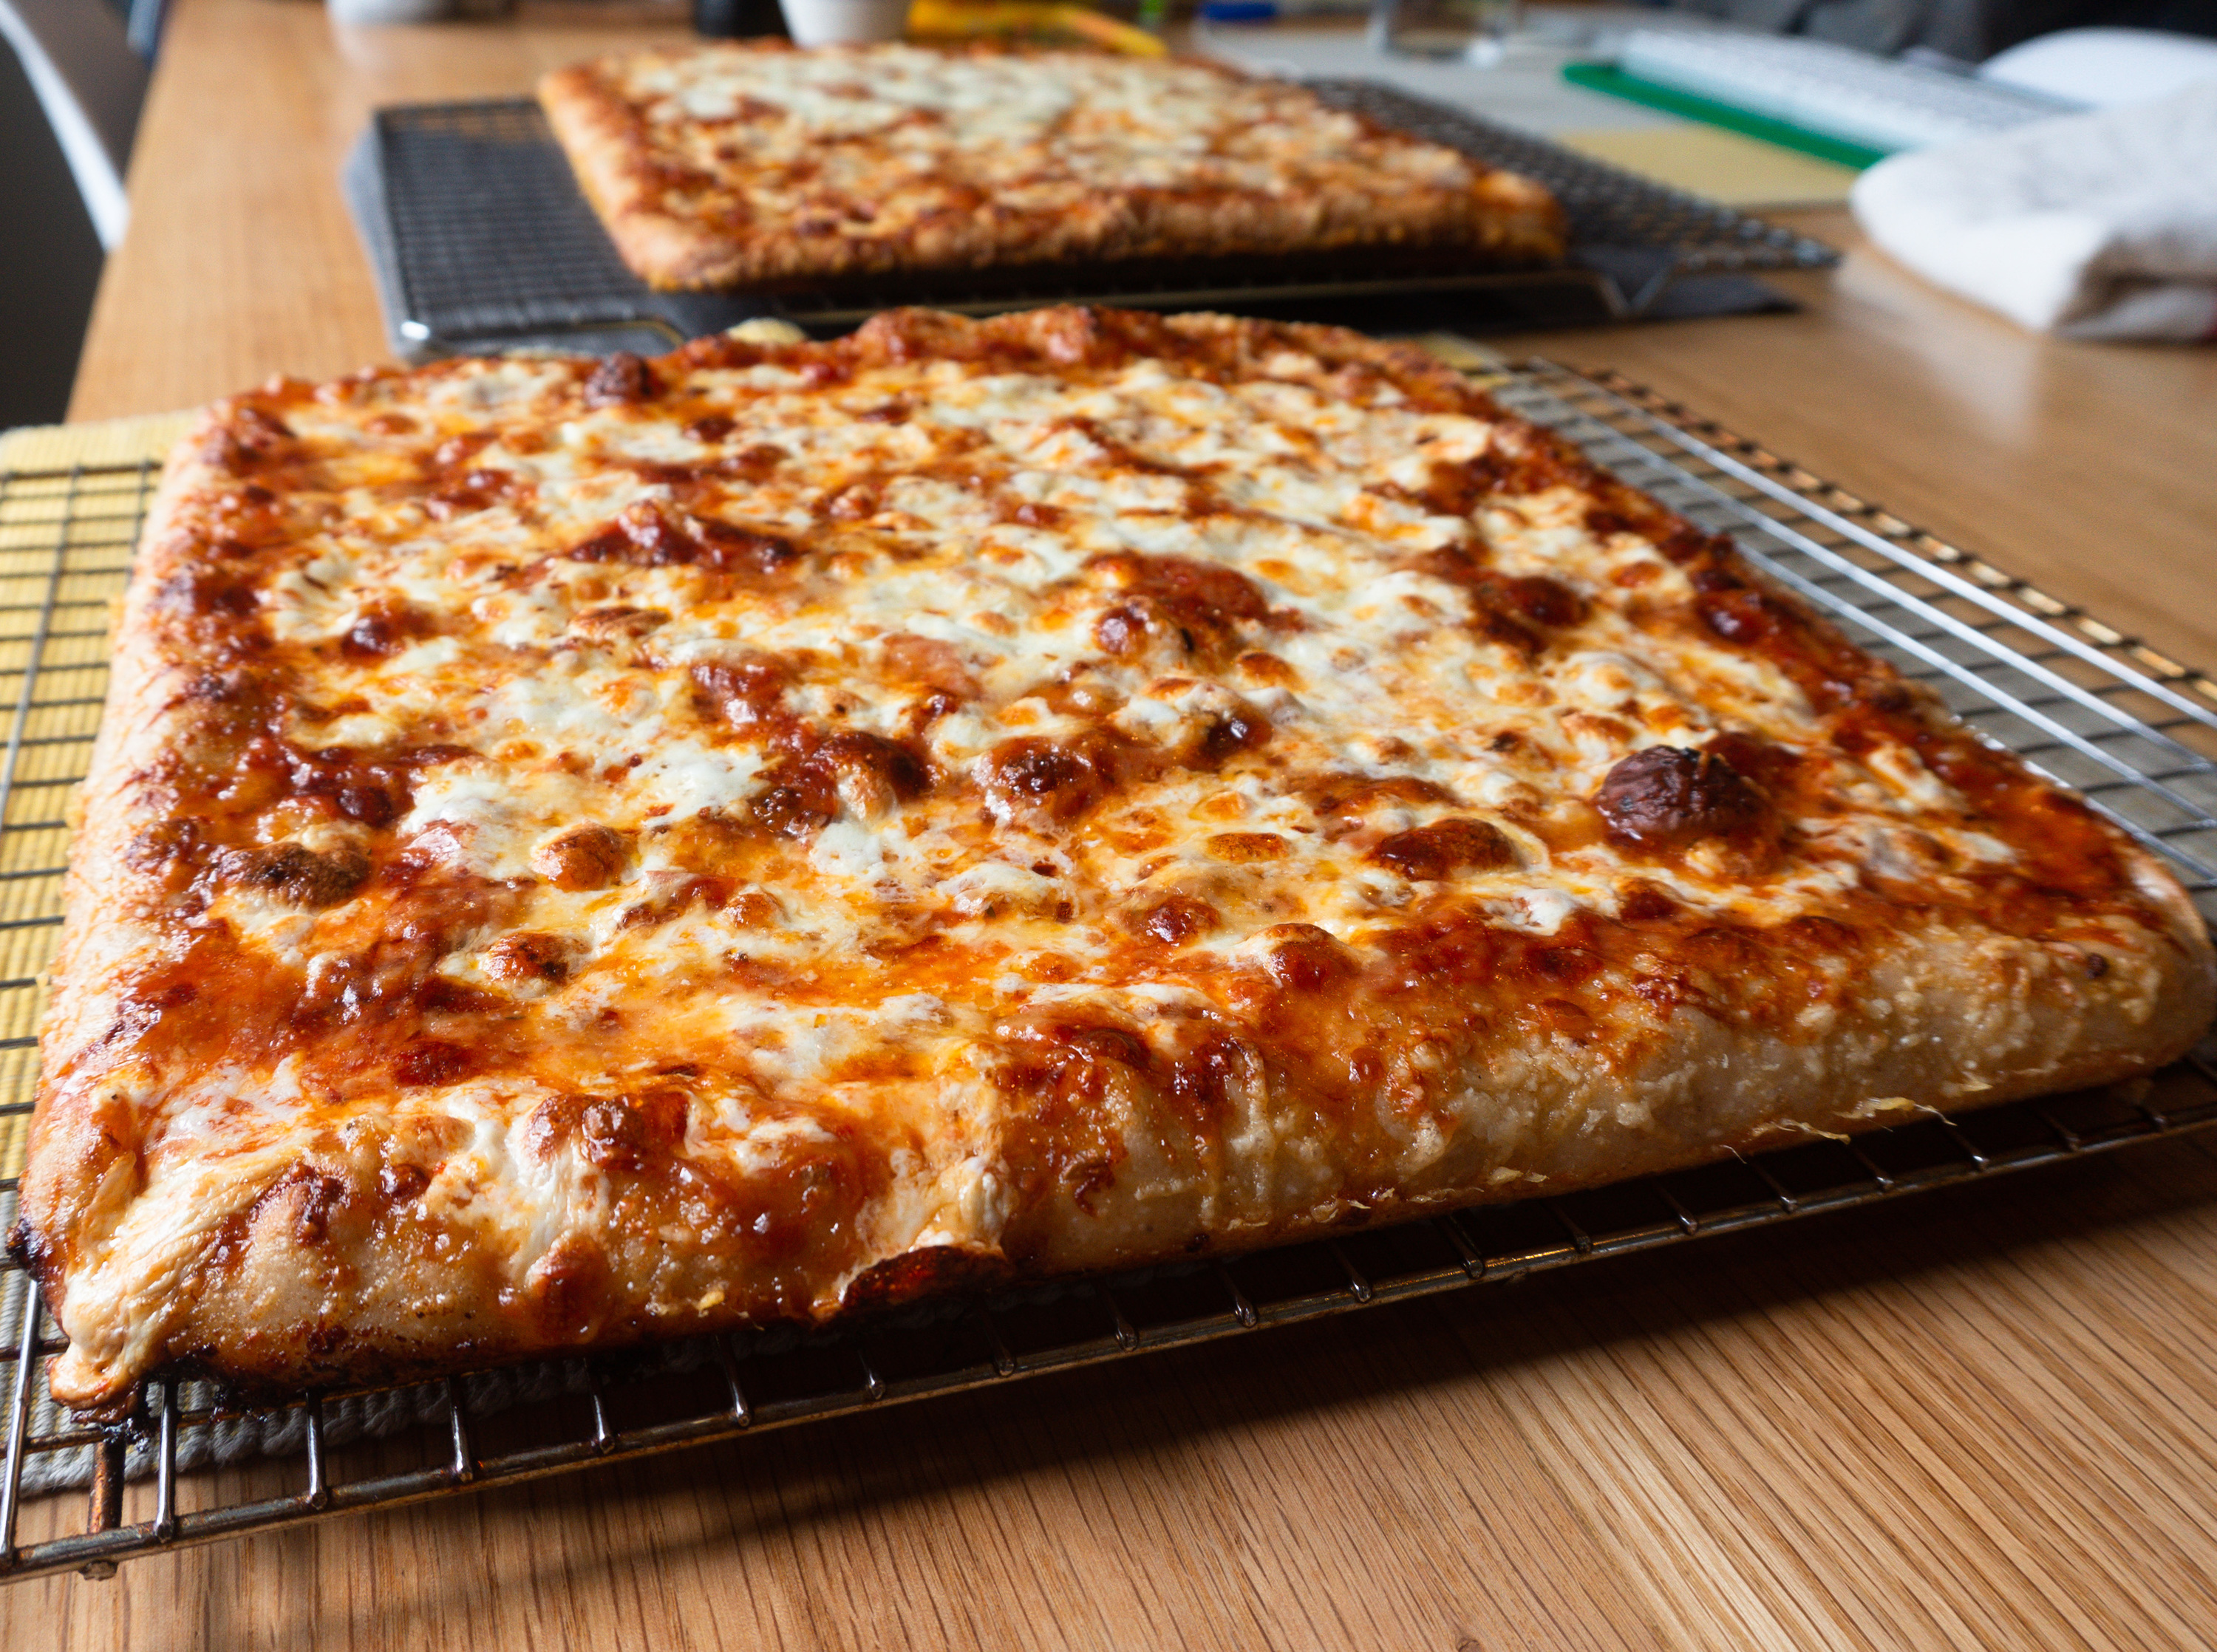 A Logan Square couple is raffling off homemade pizzas to support Assata's Daughters